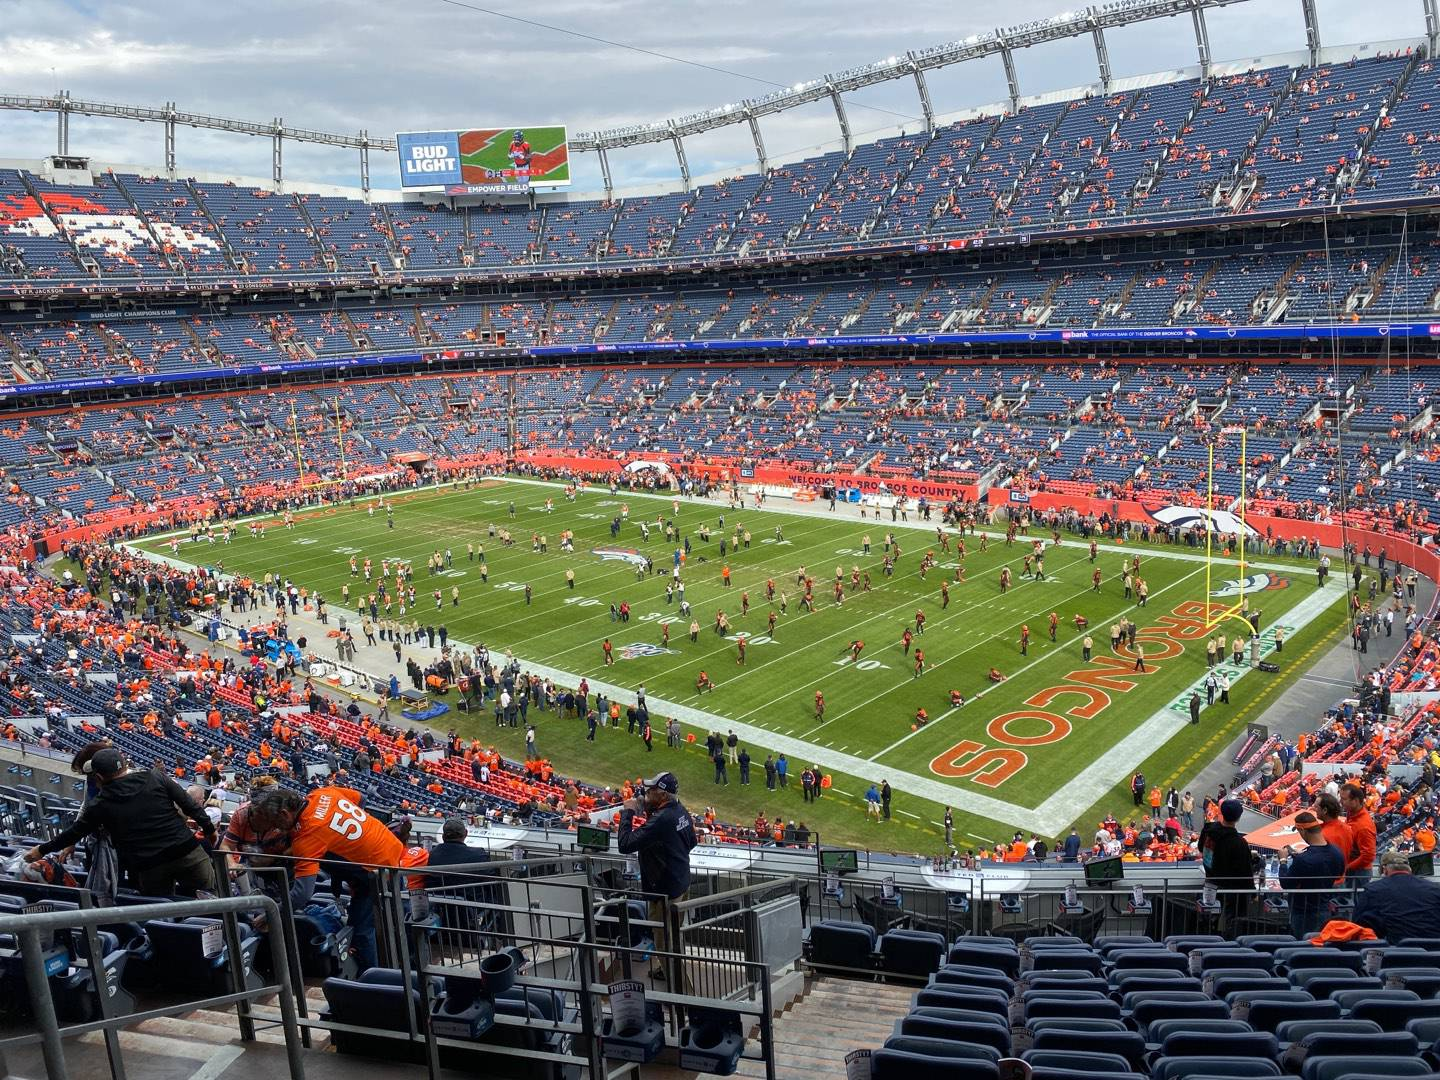 Empower Field at Mile High Stadium Section 301 Row 14 Seat 17